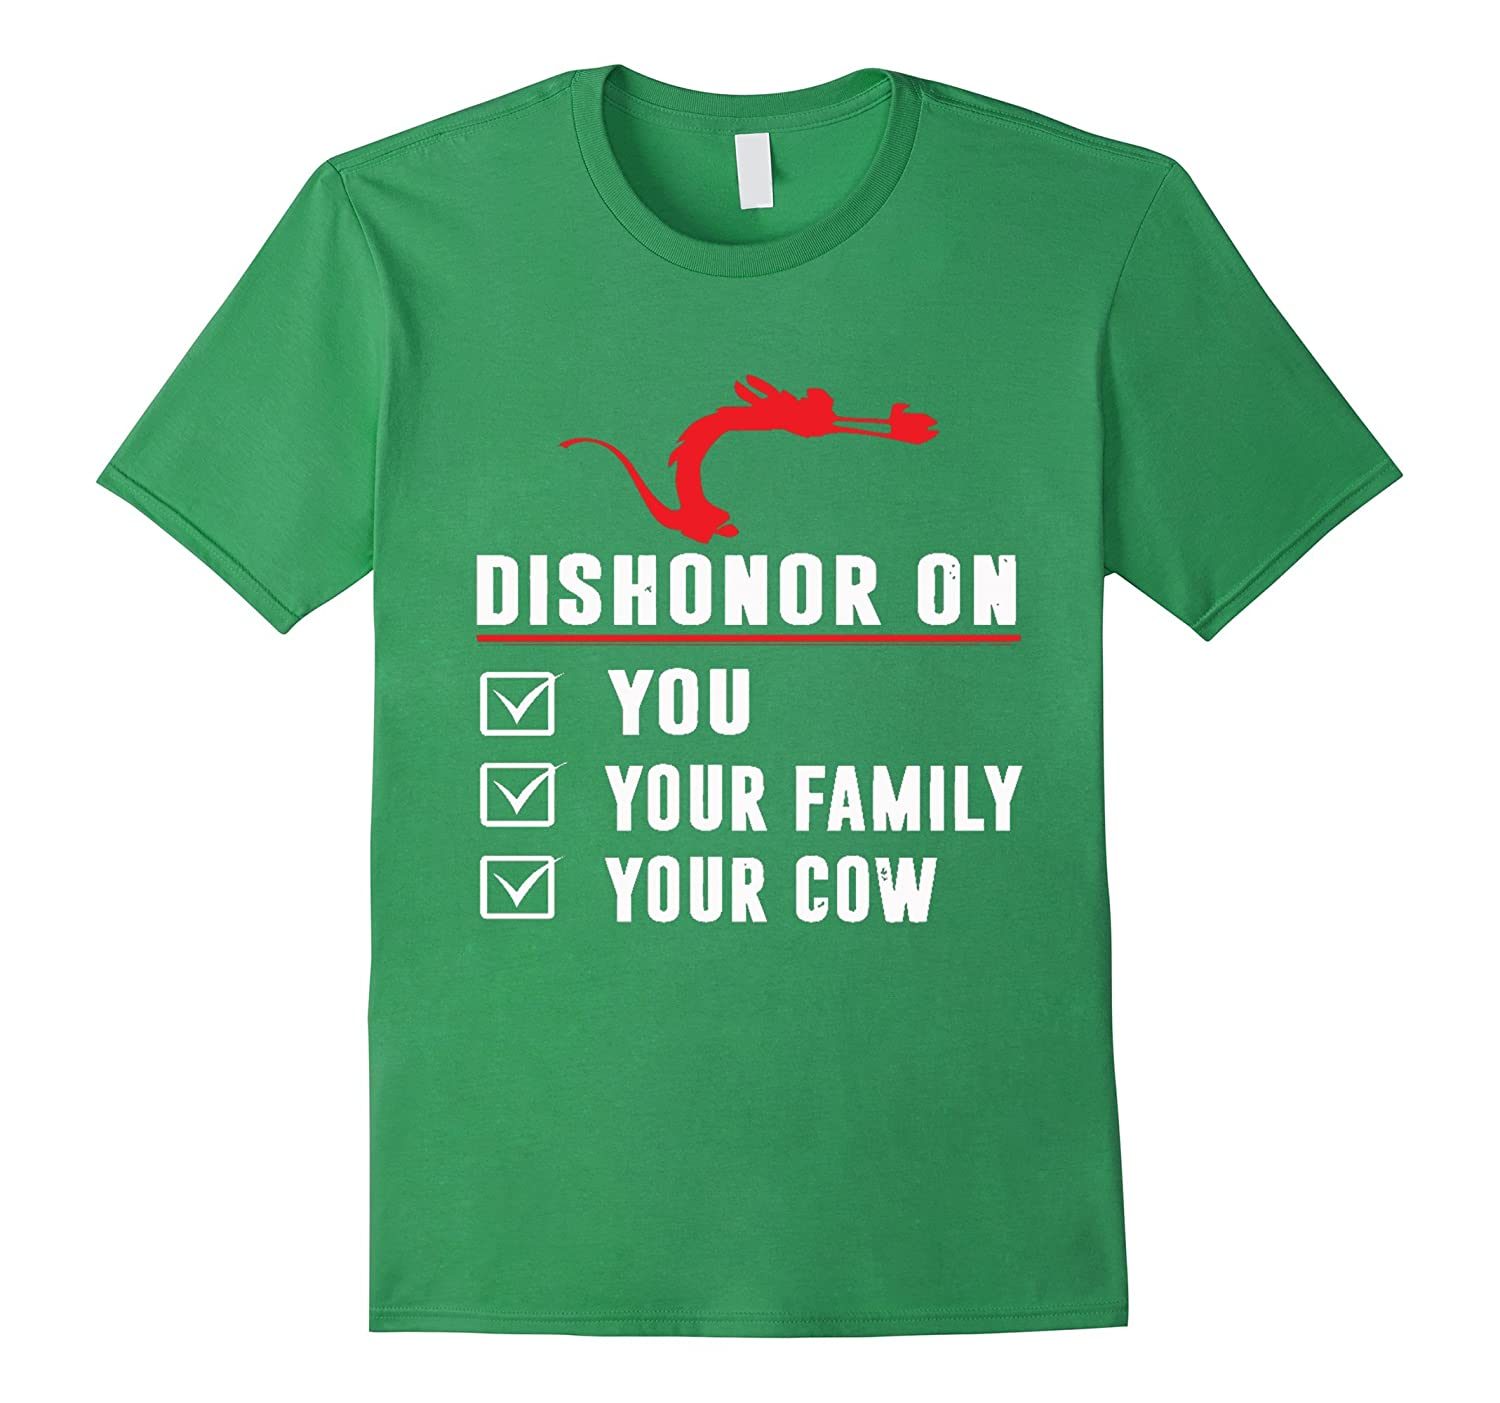 Dishonor On You Your Family Your Cow-Teevkd